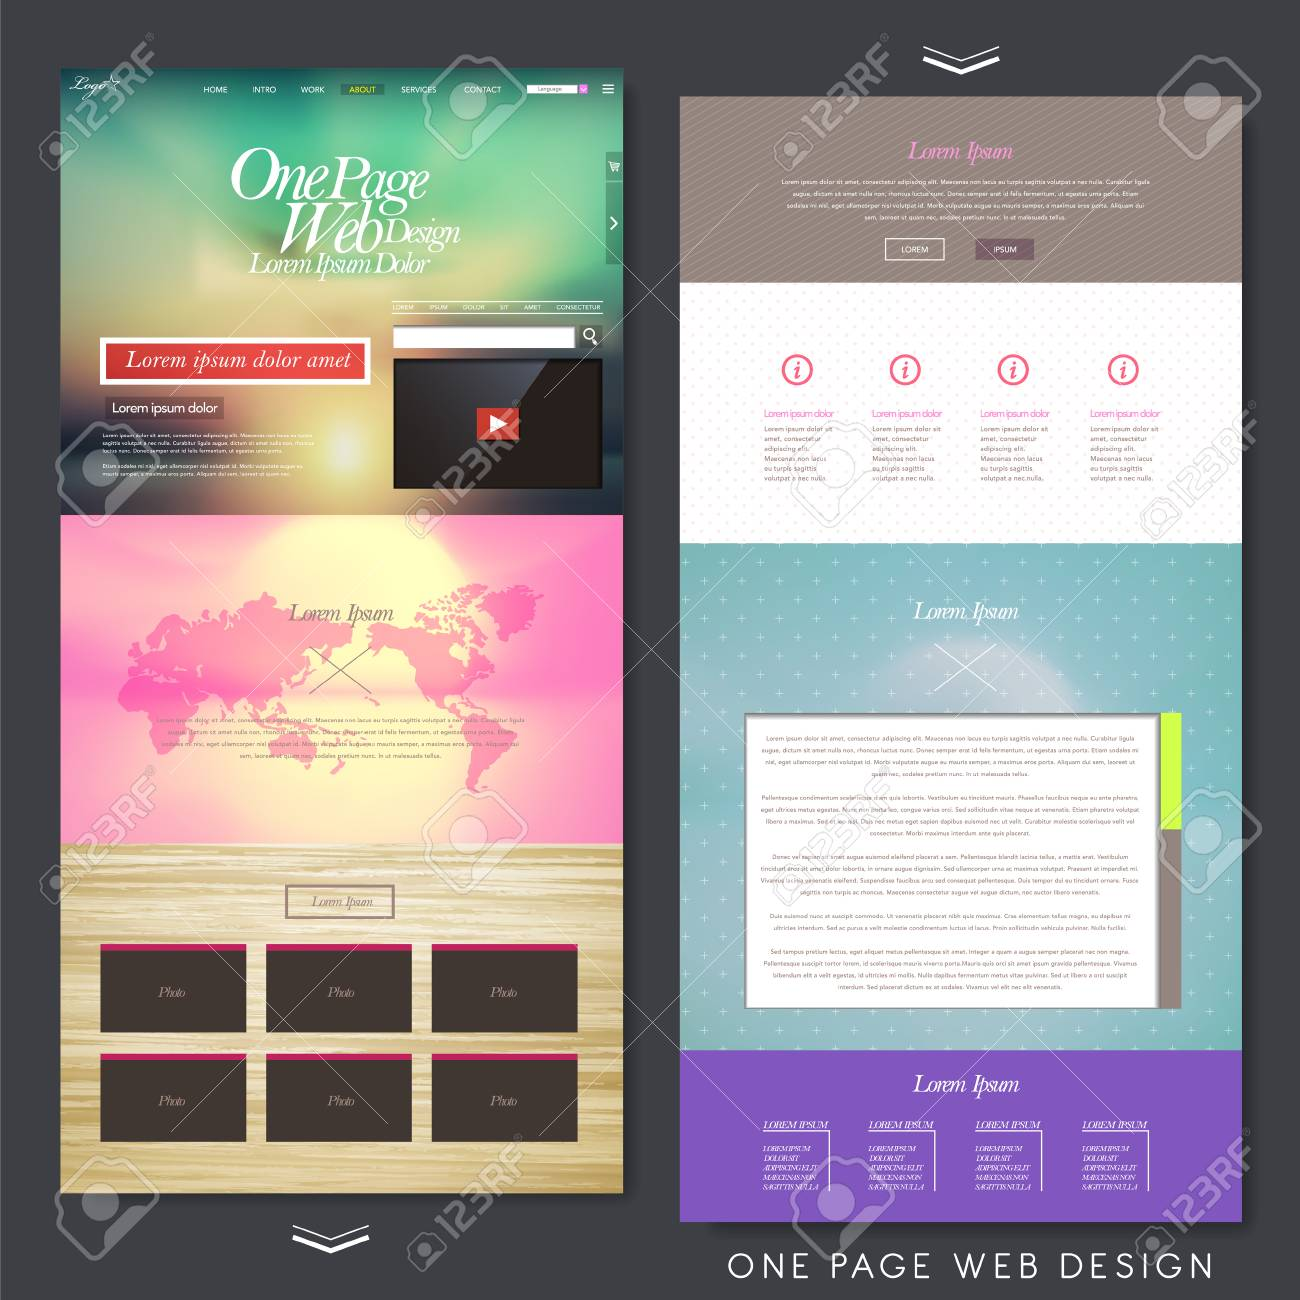 Colorful Modern Style One Page Website Design Template Royalty Free ...